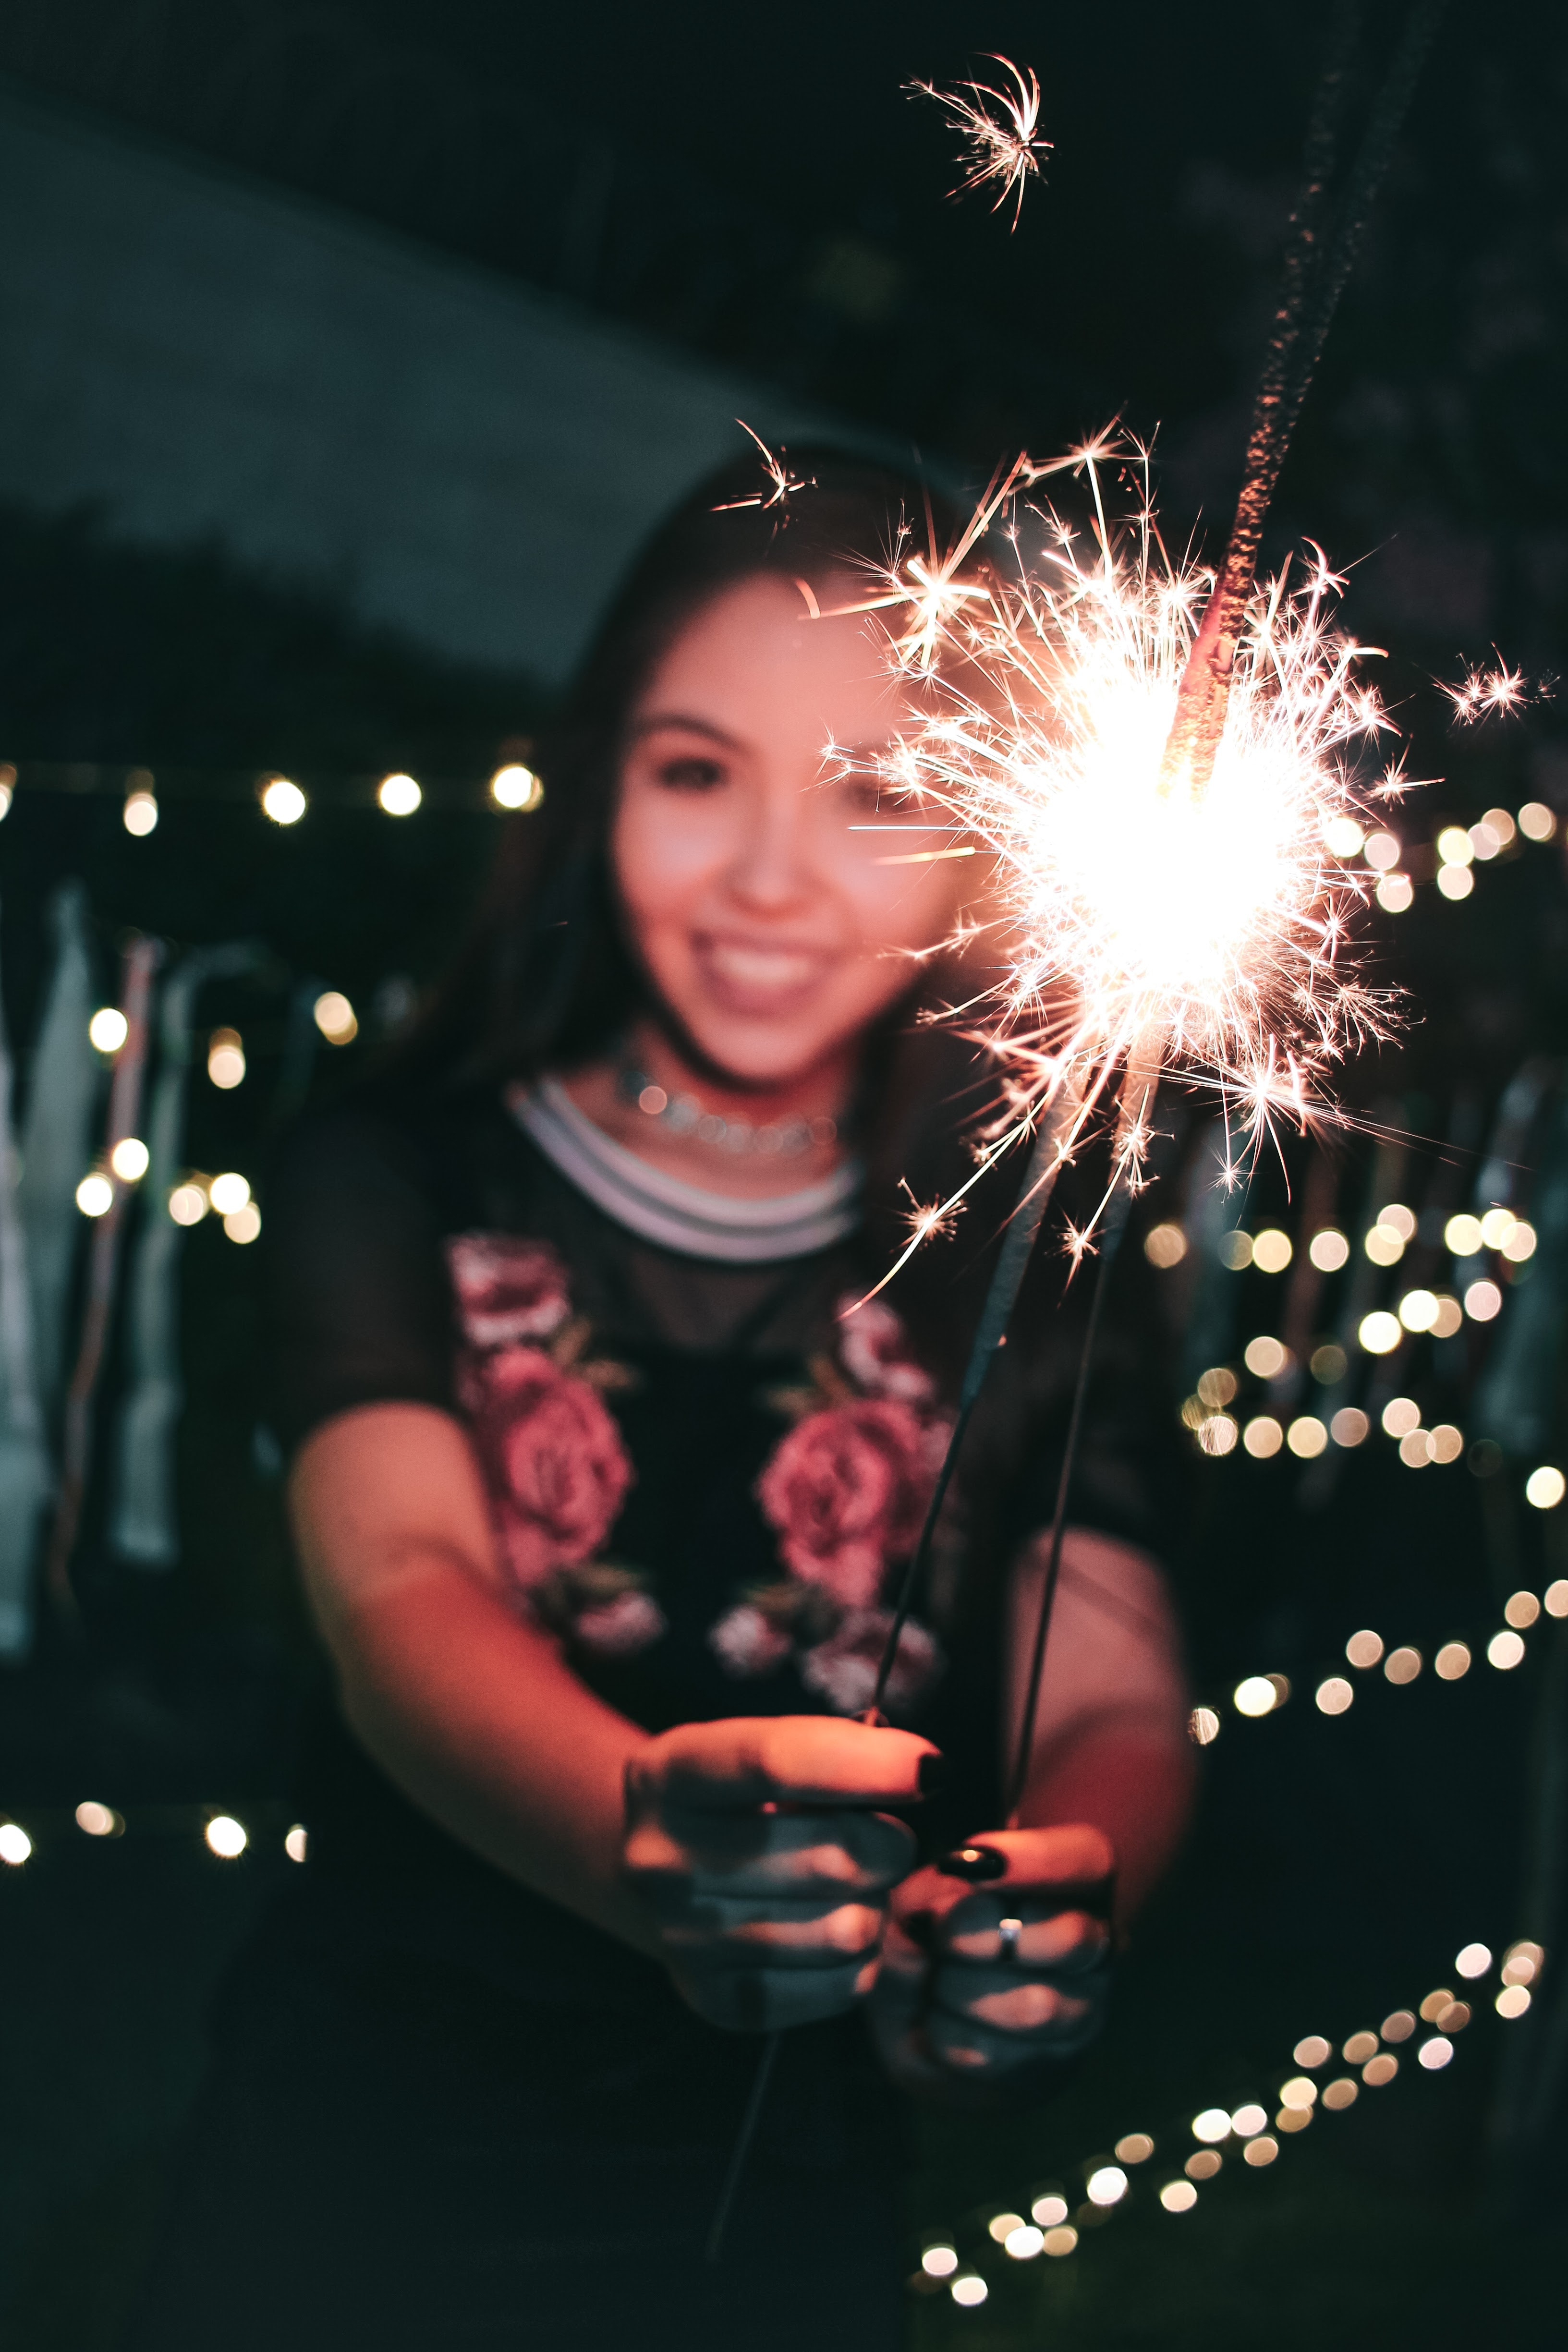 Woman Holding Firecrackers, Blur, Sparks, Sparkler, Smiling, HQ Photo